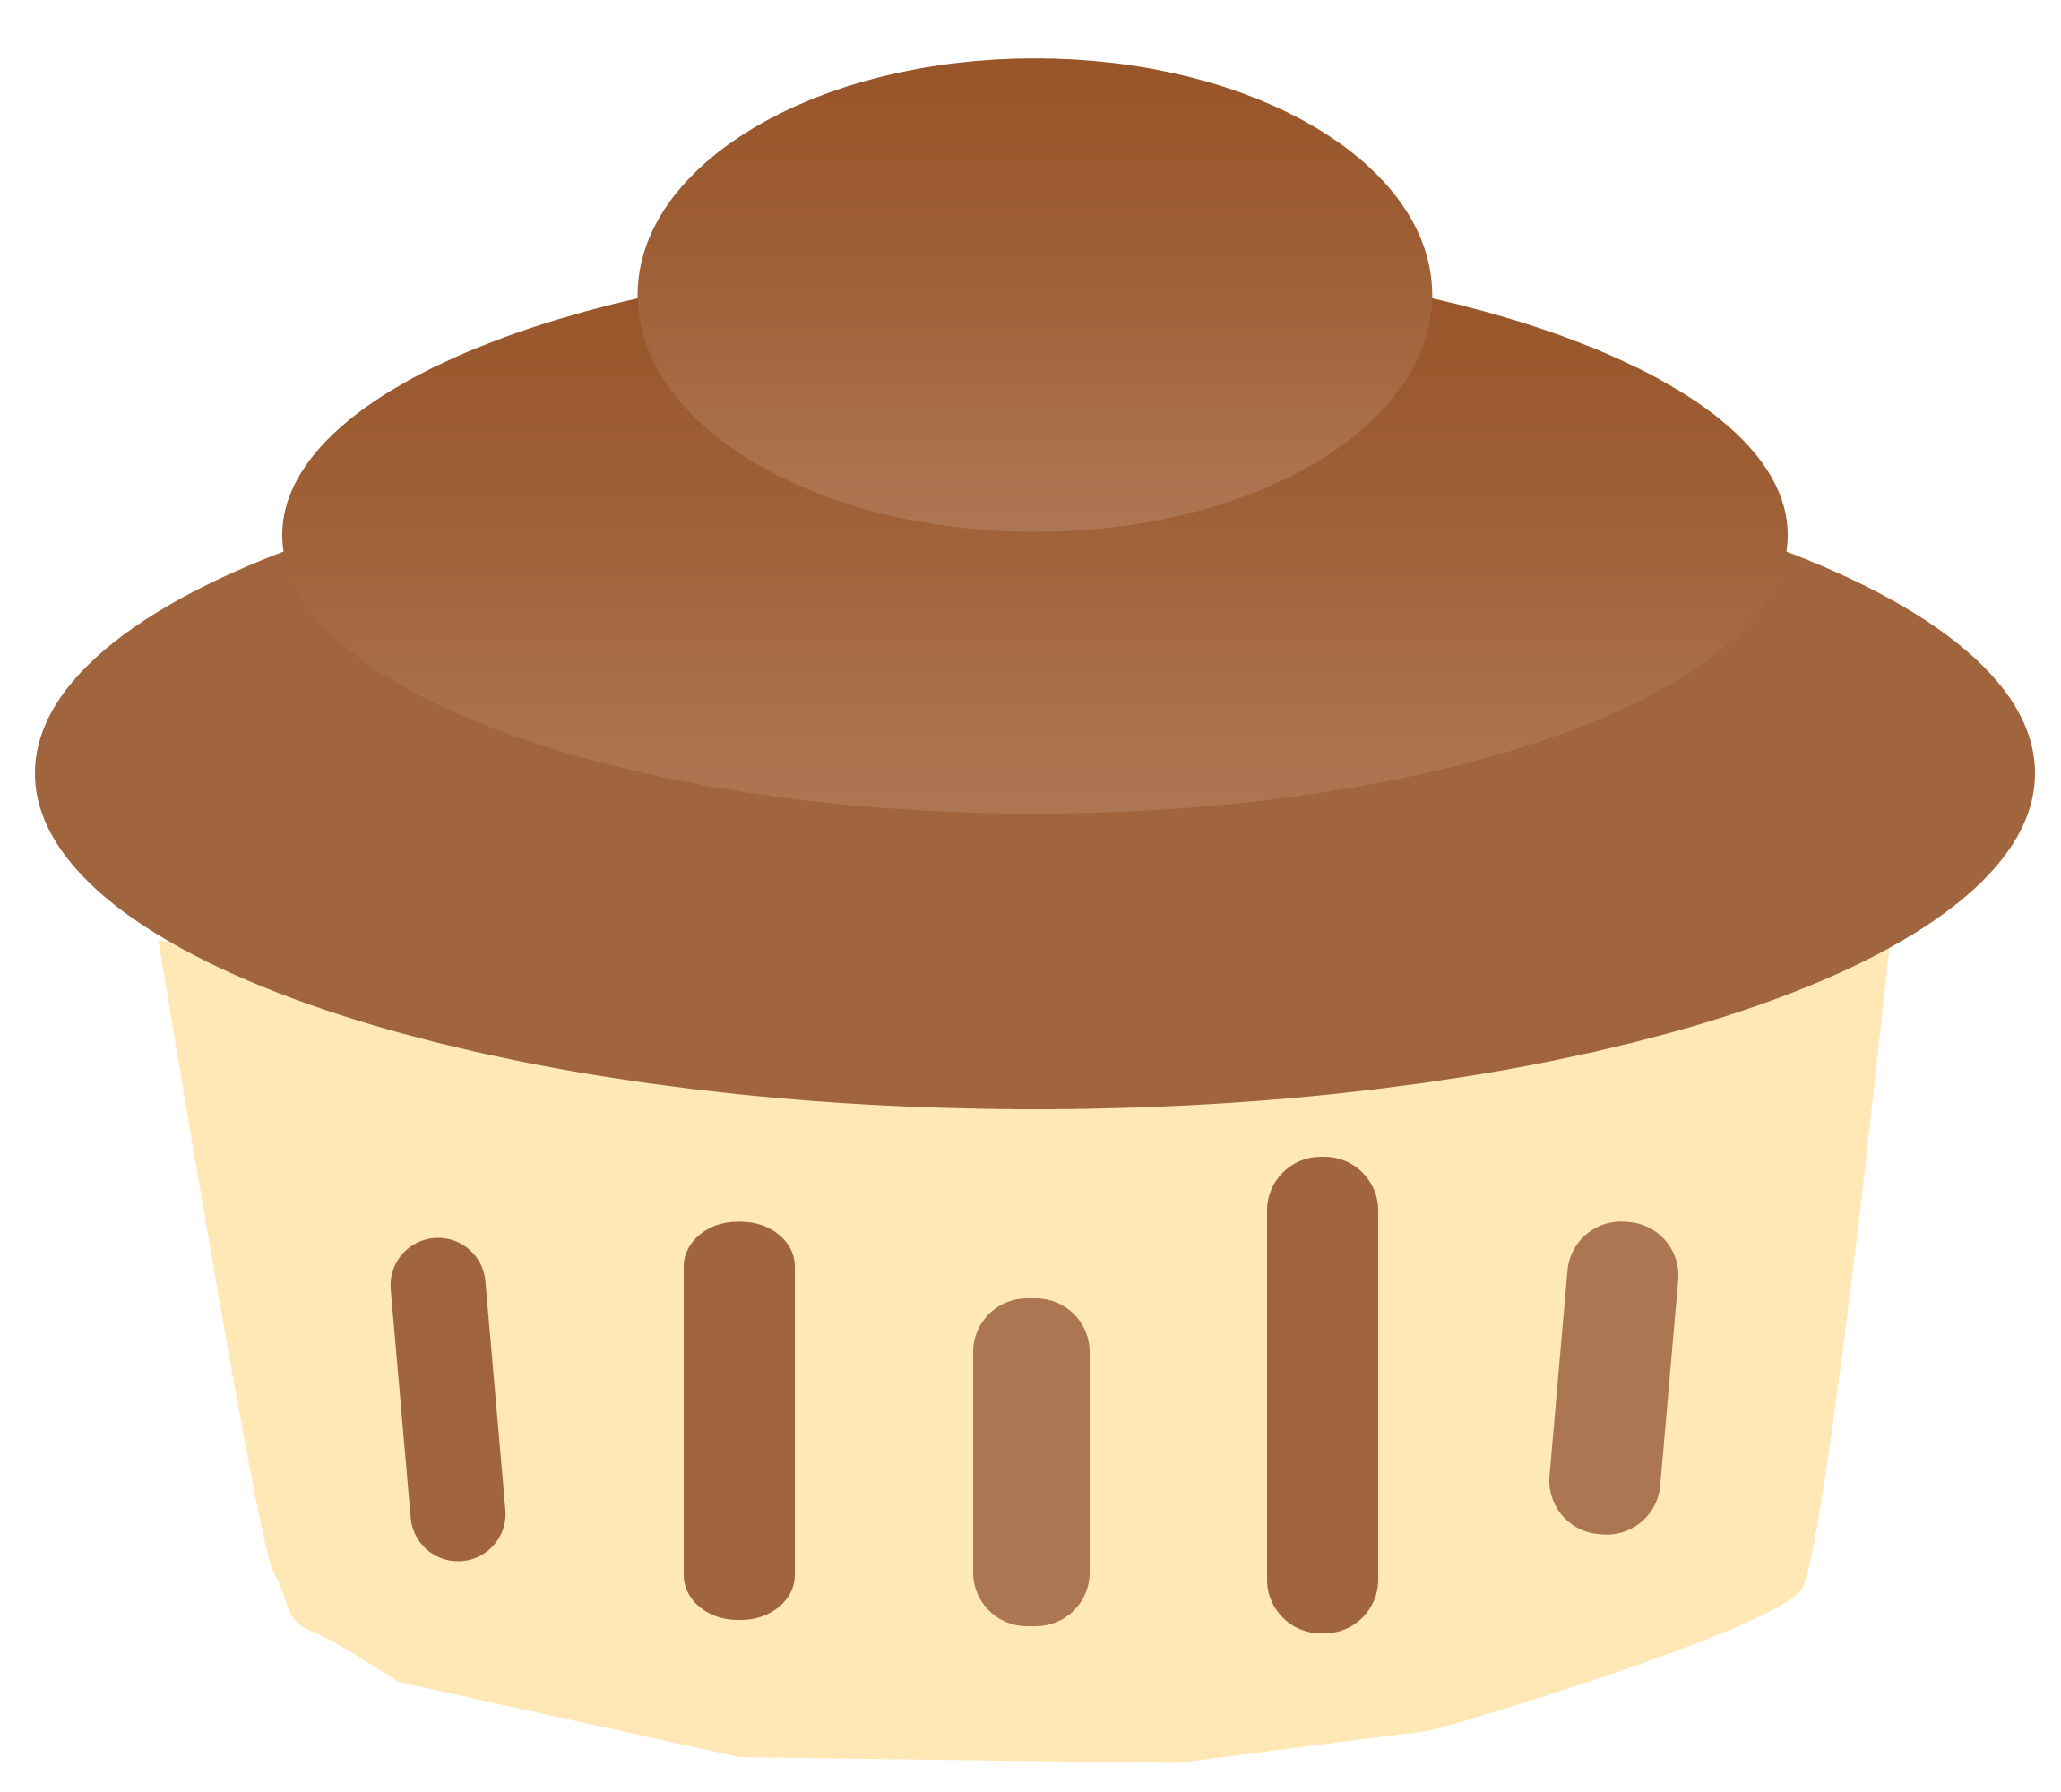 Brownie clipart cupcake Cupcake Clipart and Cupcake clipart